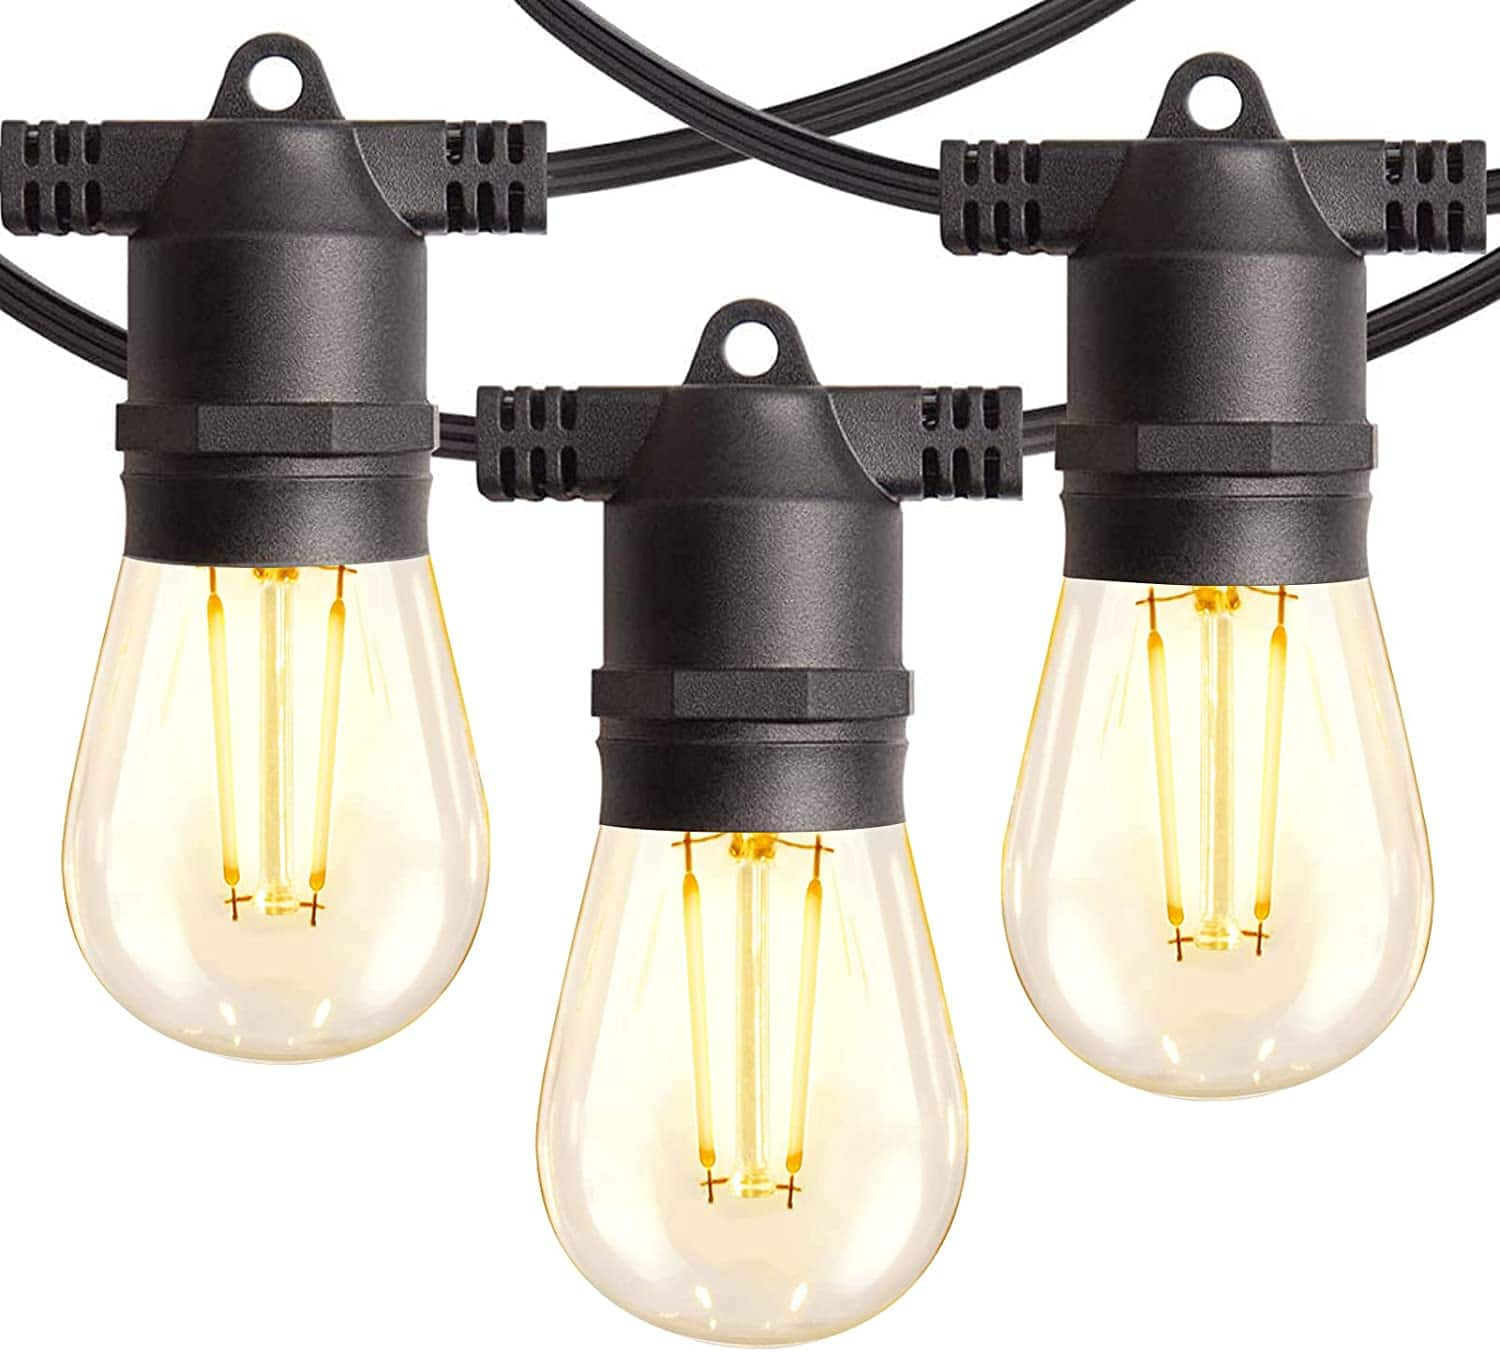 Prime Members: 48FT Low Voltage LED Outdoor String Lights w/ Shatterproof LED Filament Bulbs for $19.99 + free shipping